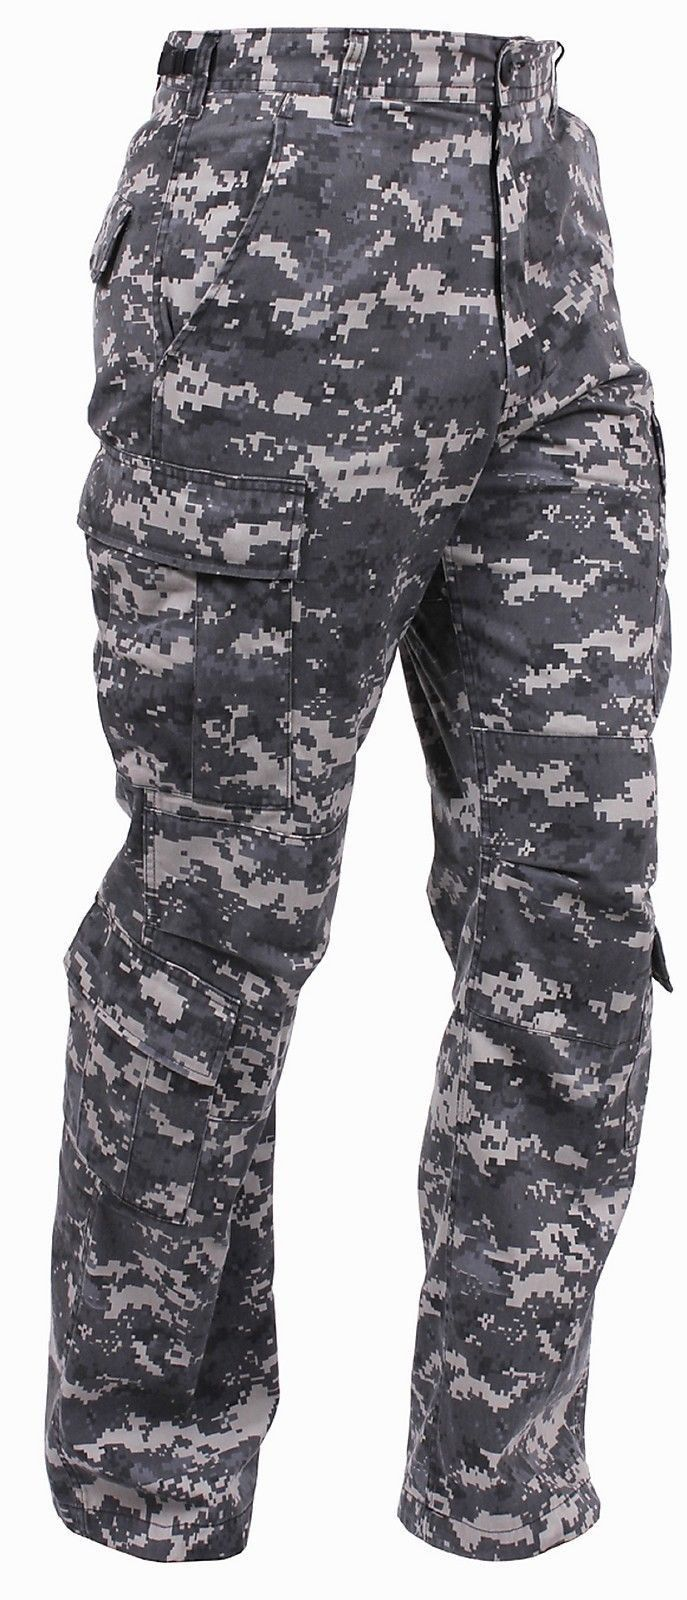 Comfortable   Durable Poly Cotton Material - Features Subdued Urban Digital  Paratrooper Fatigue Cargo Pants - Two 2